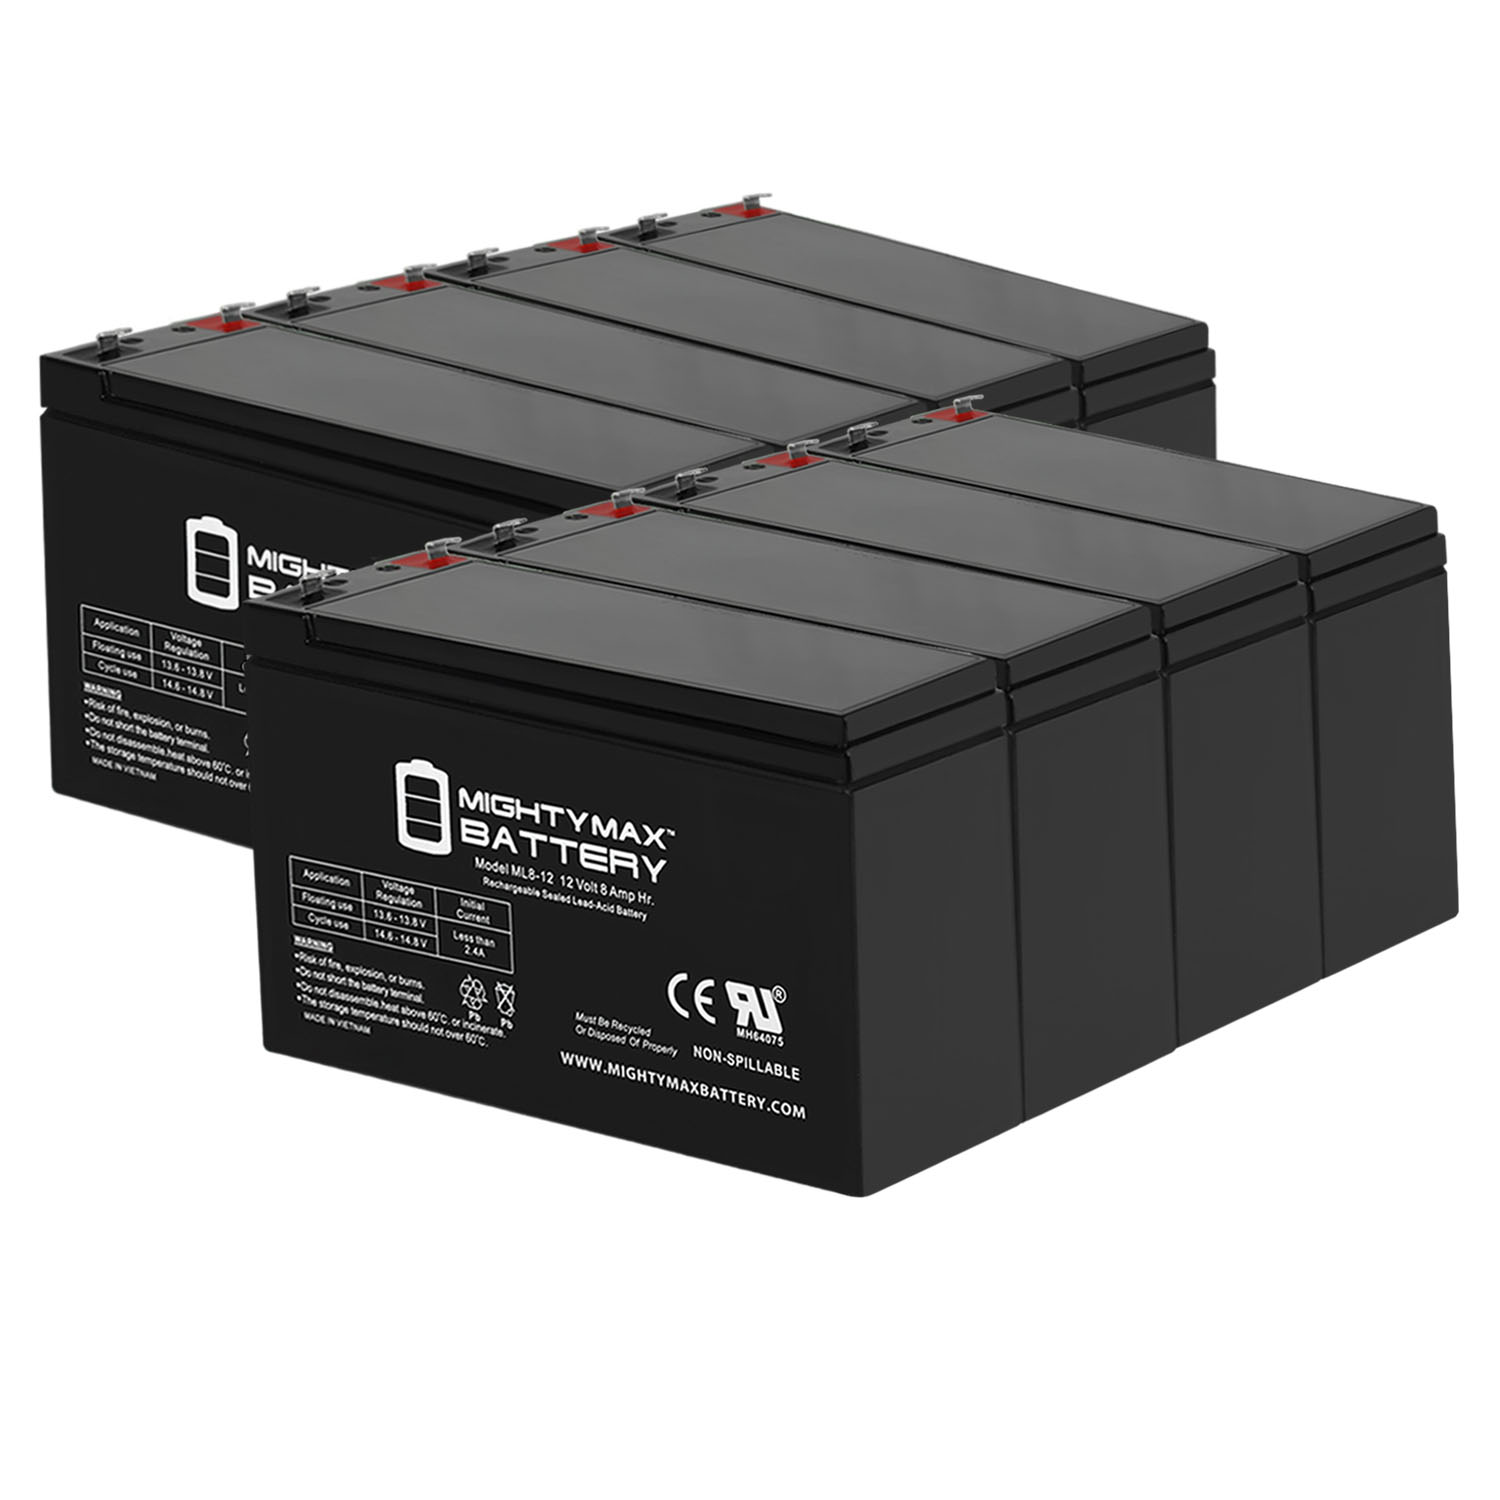 ML8-12 - 12V 8AH Replacement for Leoch Peg Perego DJW12-8HD Battery - 8 Pack